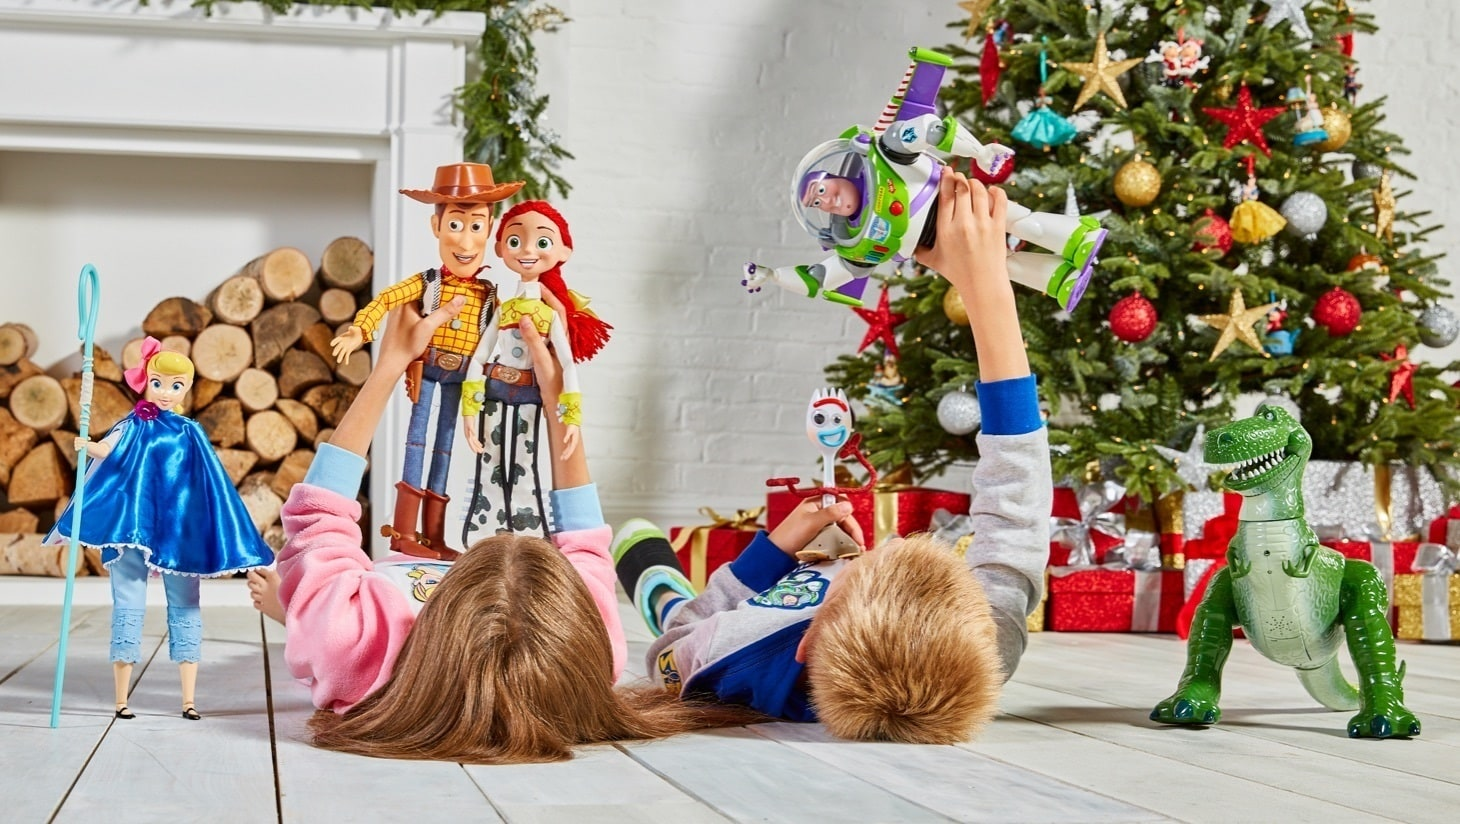 Children playing with Toy Story inspired Talking Action figures